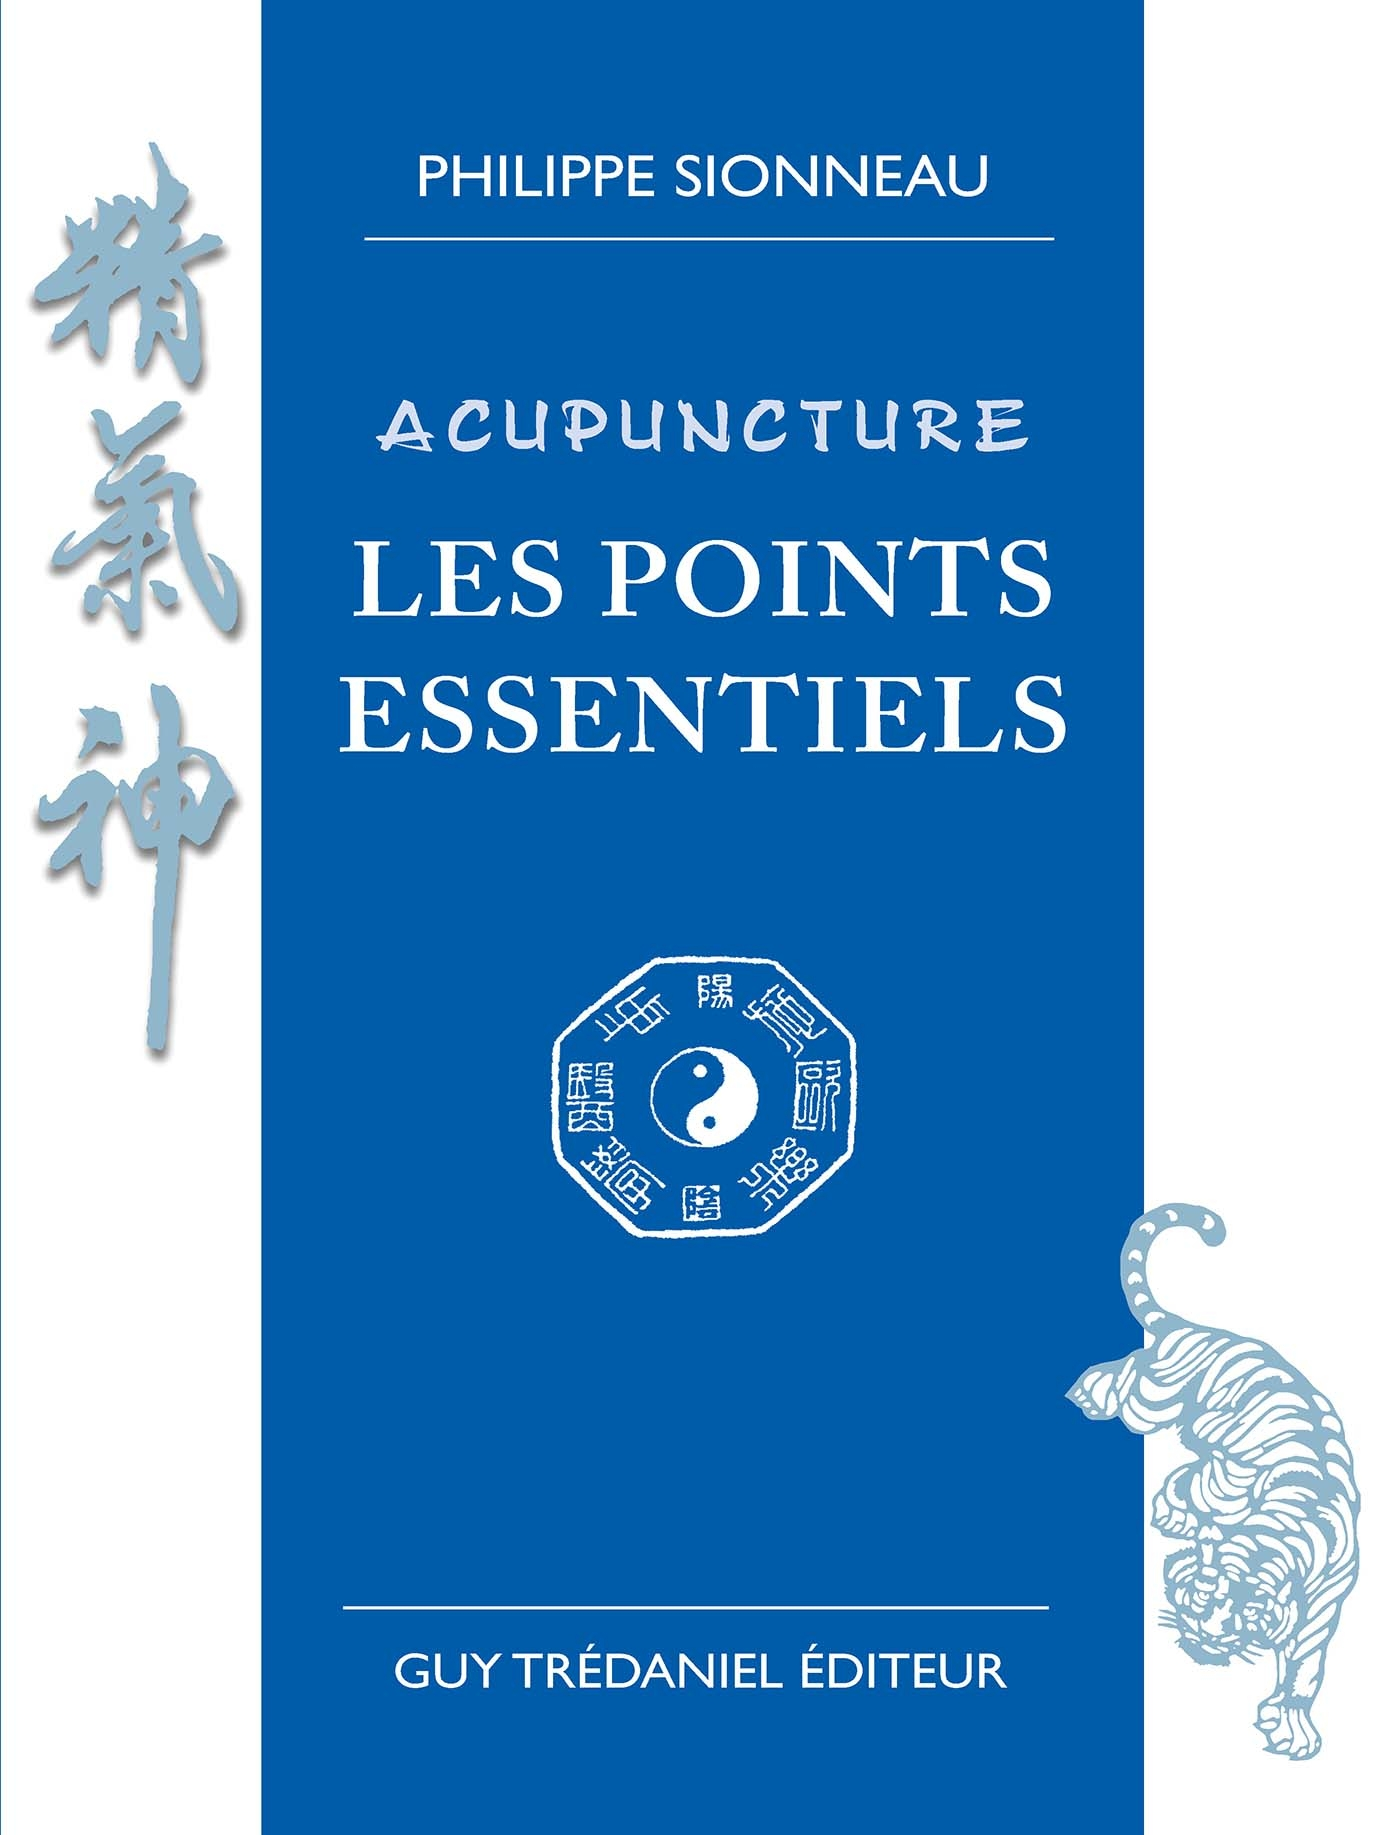 Acupuncture les points essentiels